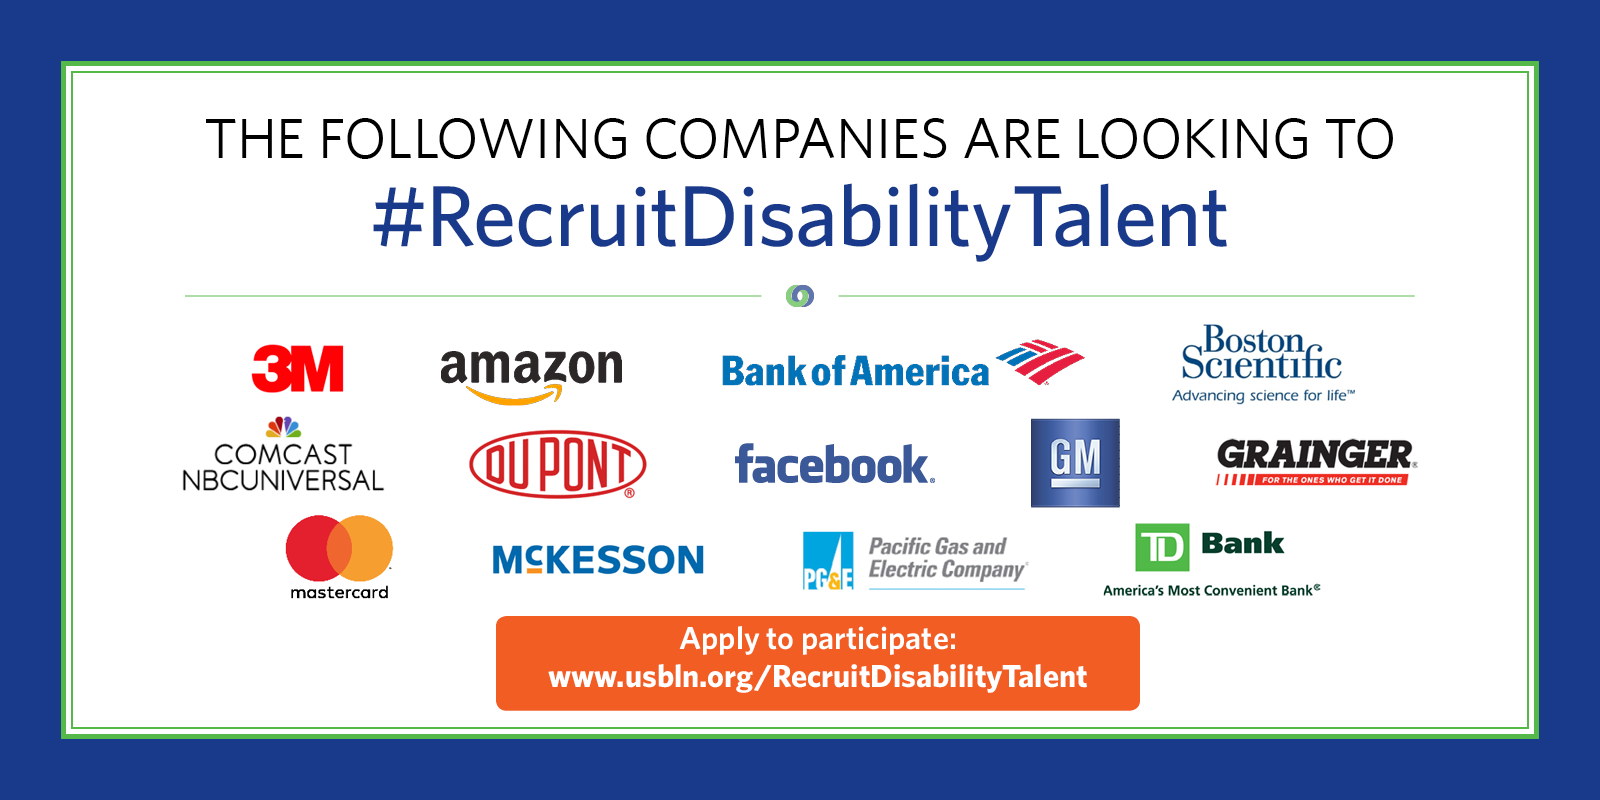 News events usbln usbln connects talent with disabilities with top corporations through innovative virtual career event washington dc march 07 2018 globe newswire altavistaventures Images